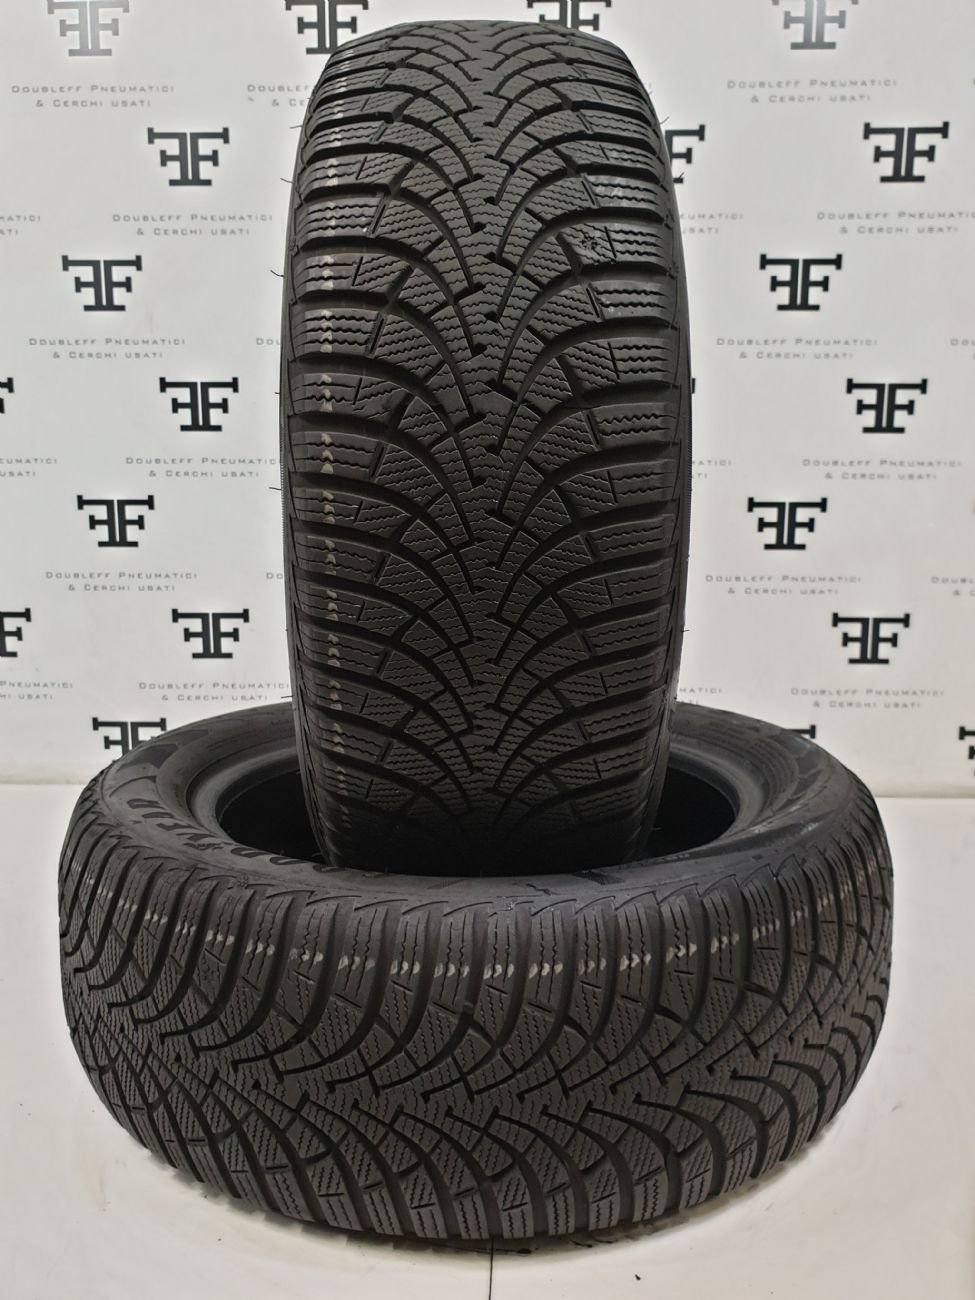 195/60 R16 93 H GOODYEAR ULTRAGRIP 9